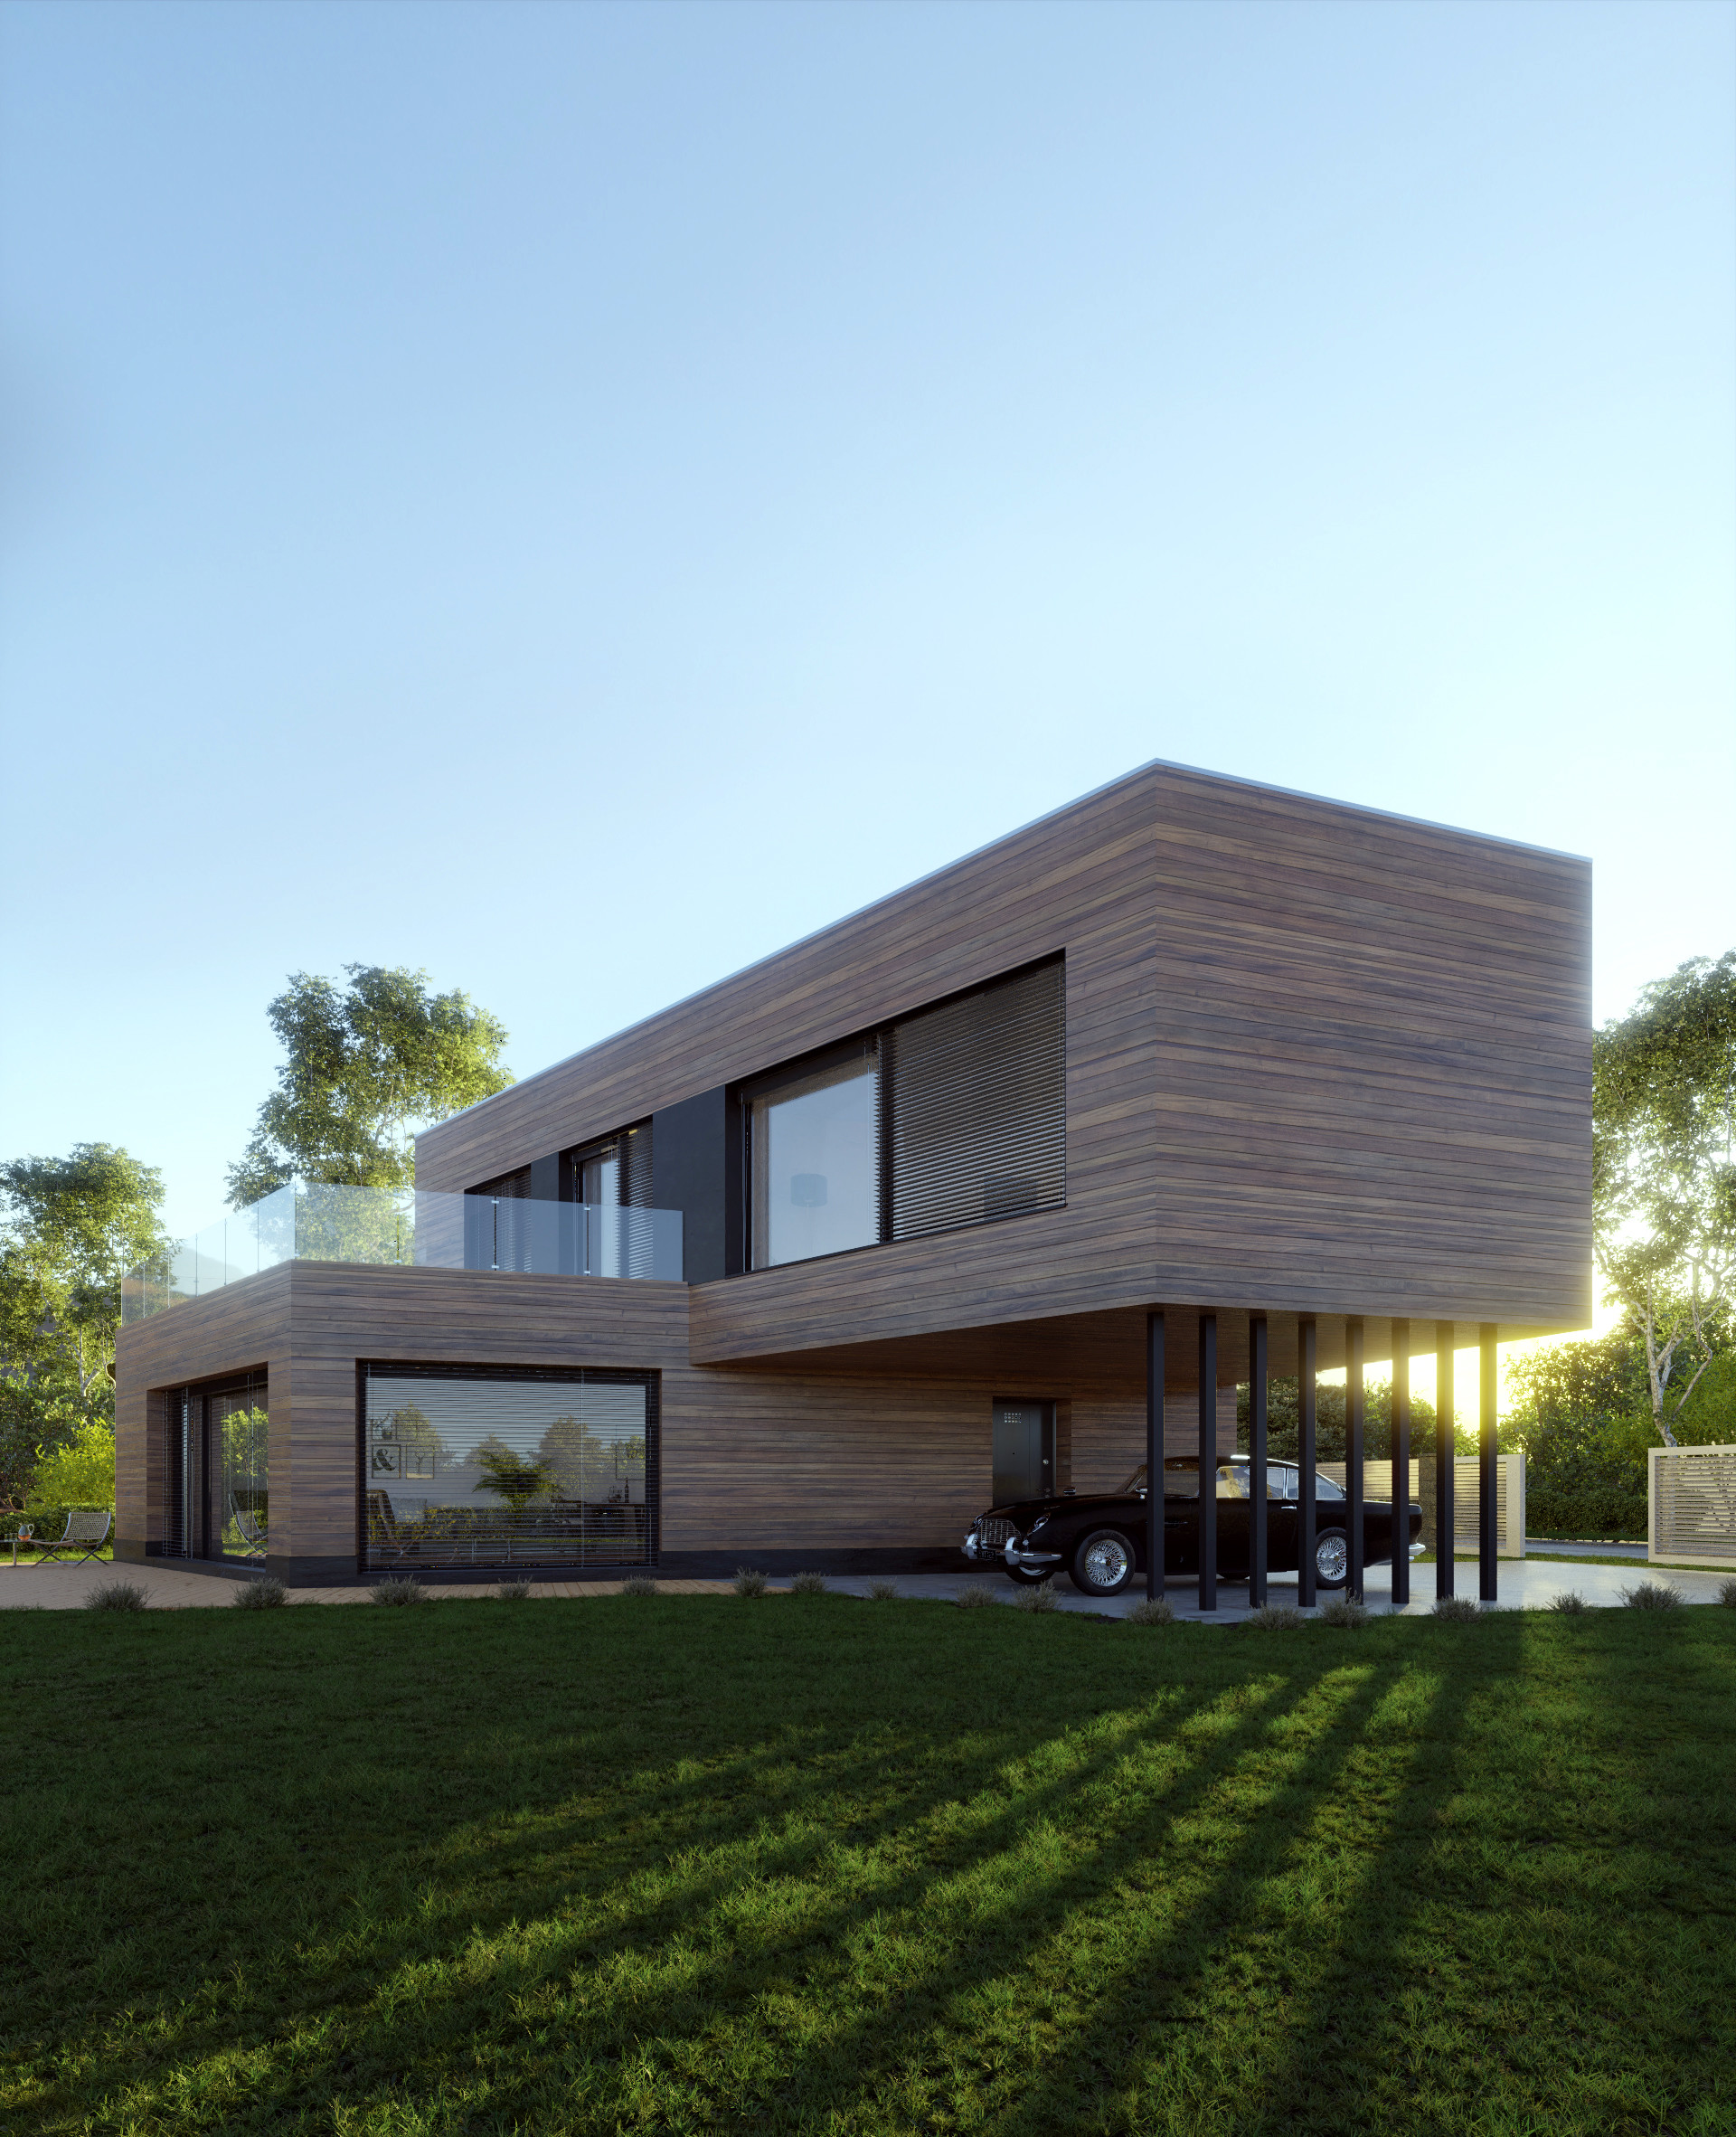 house_by_lavarch_architects.jpg